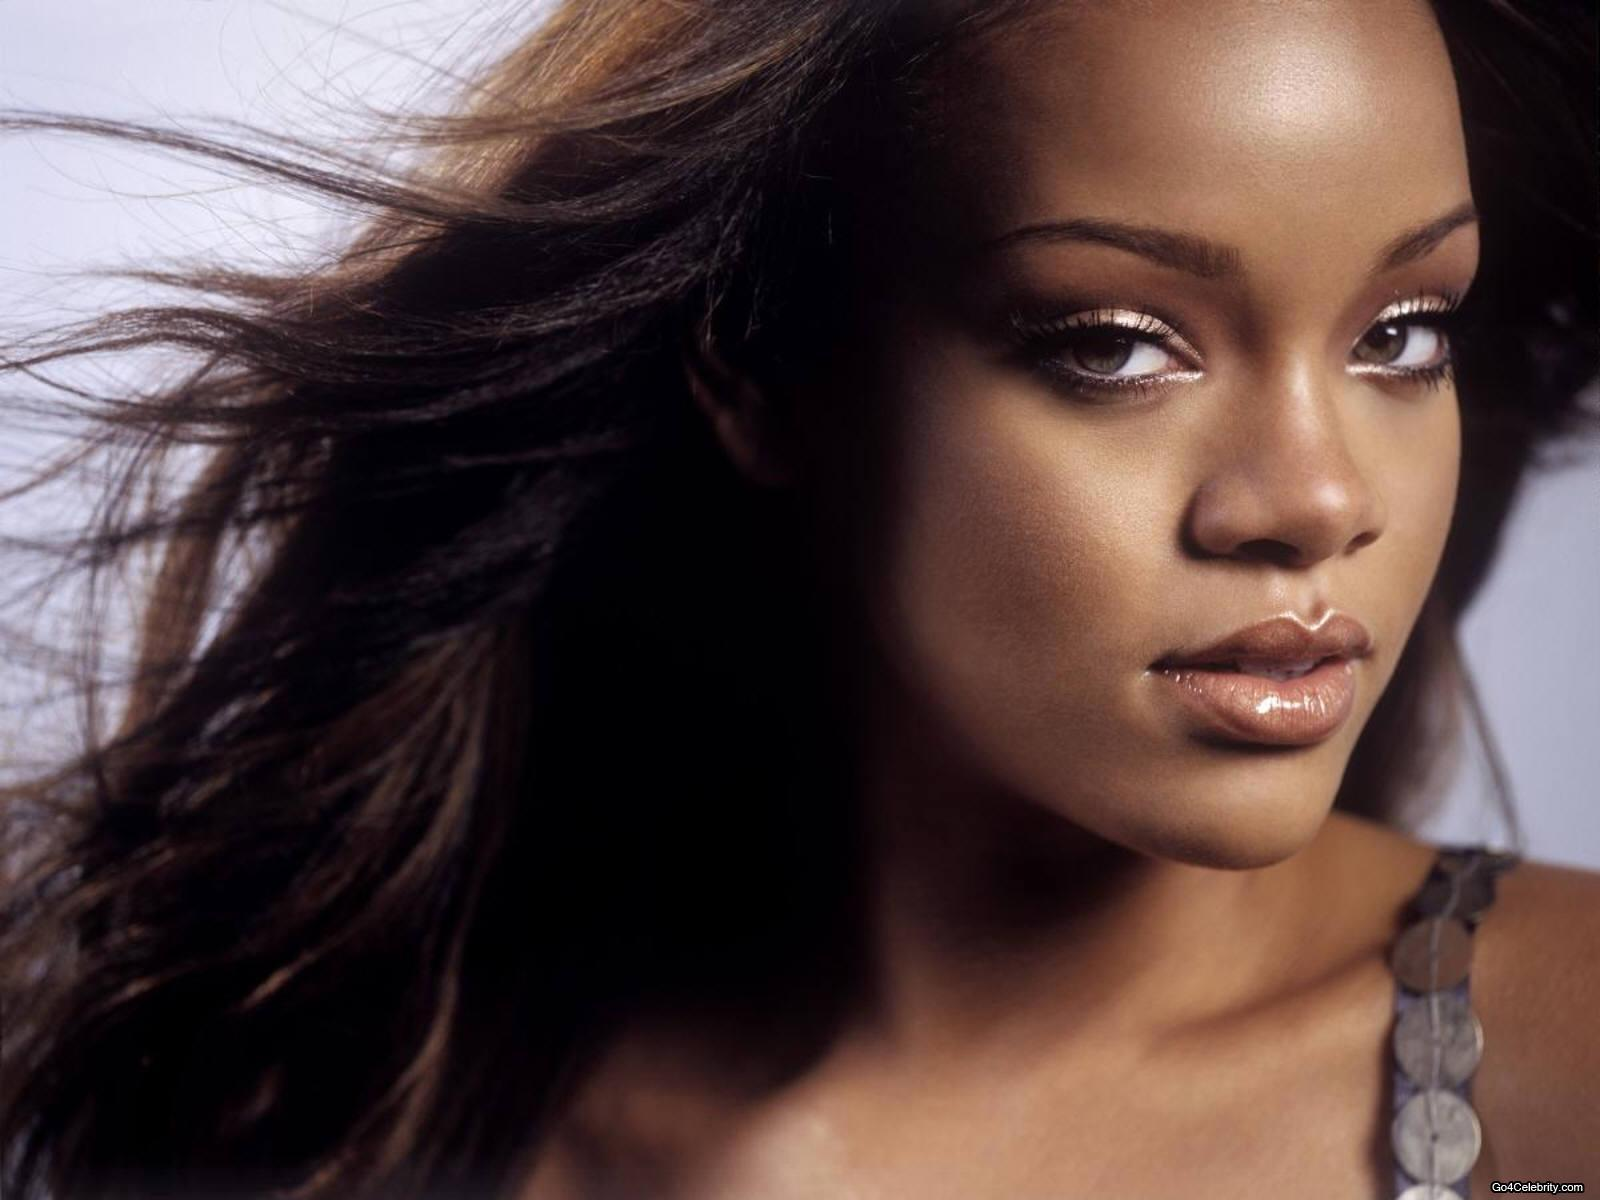 http://images2.fanpop.com/images/photos/6800000/Rihanna-rihanna-6848366-1600-1200.jpg